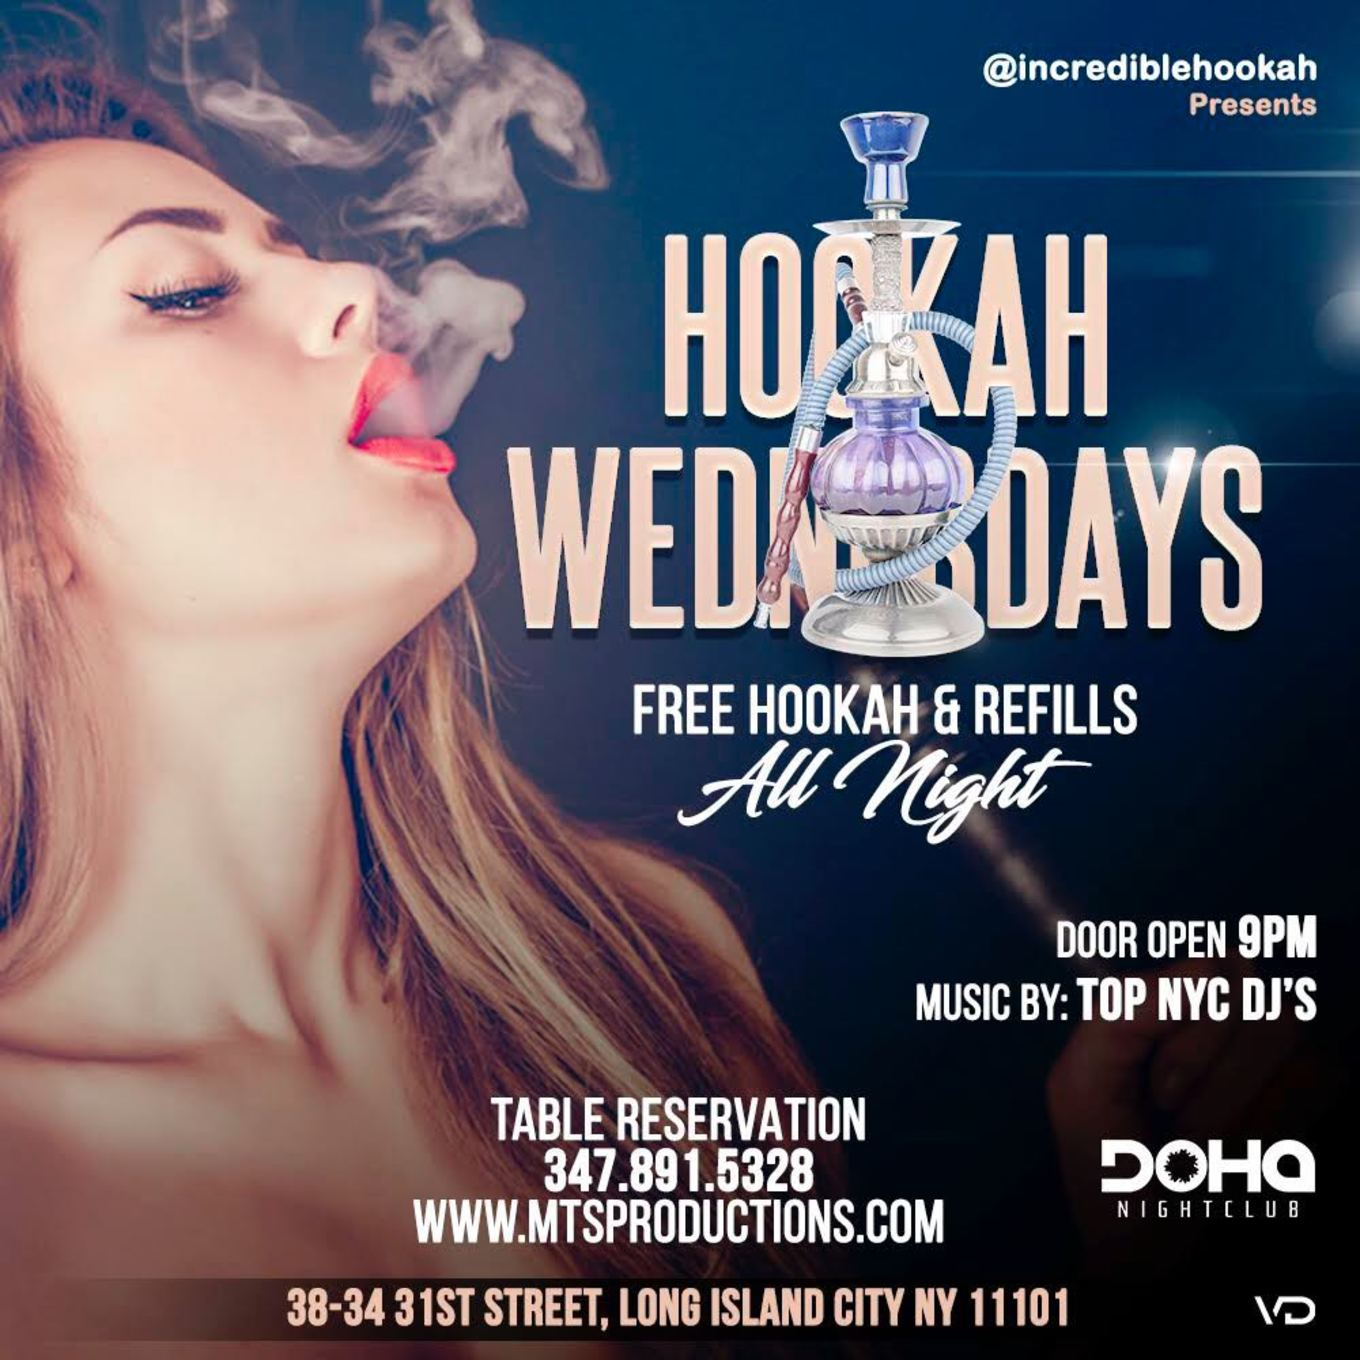 Doha Presents Free Hookah Wednesday S Tickets Doha